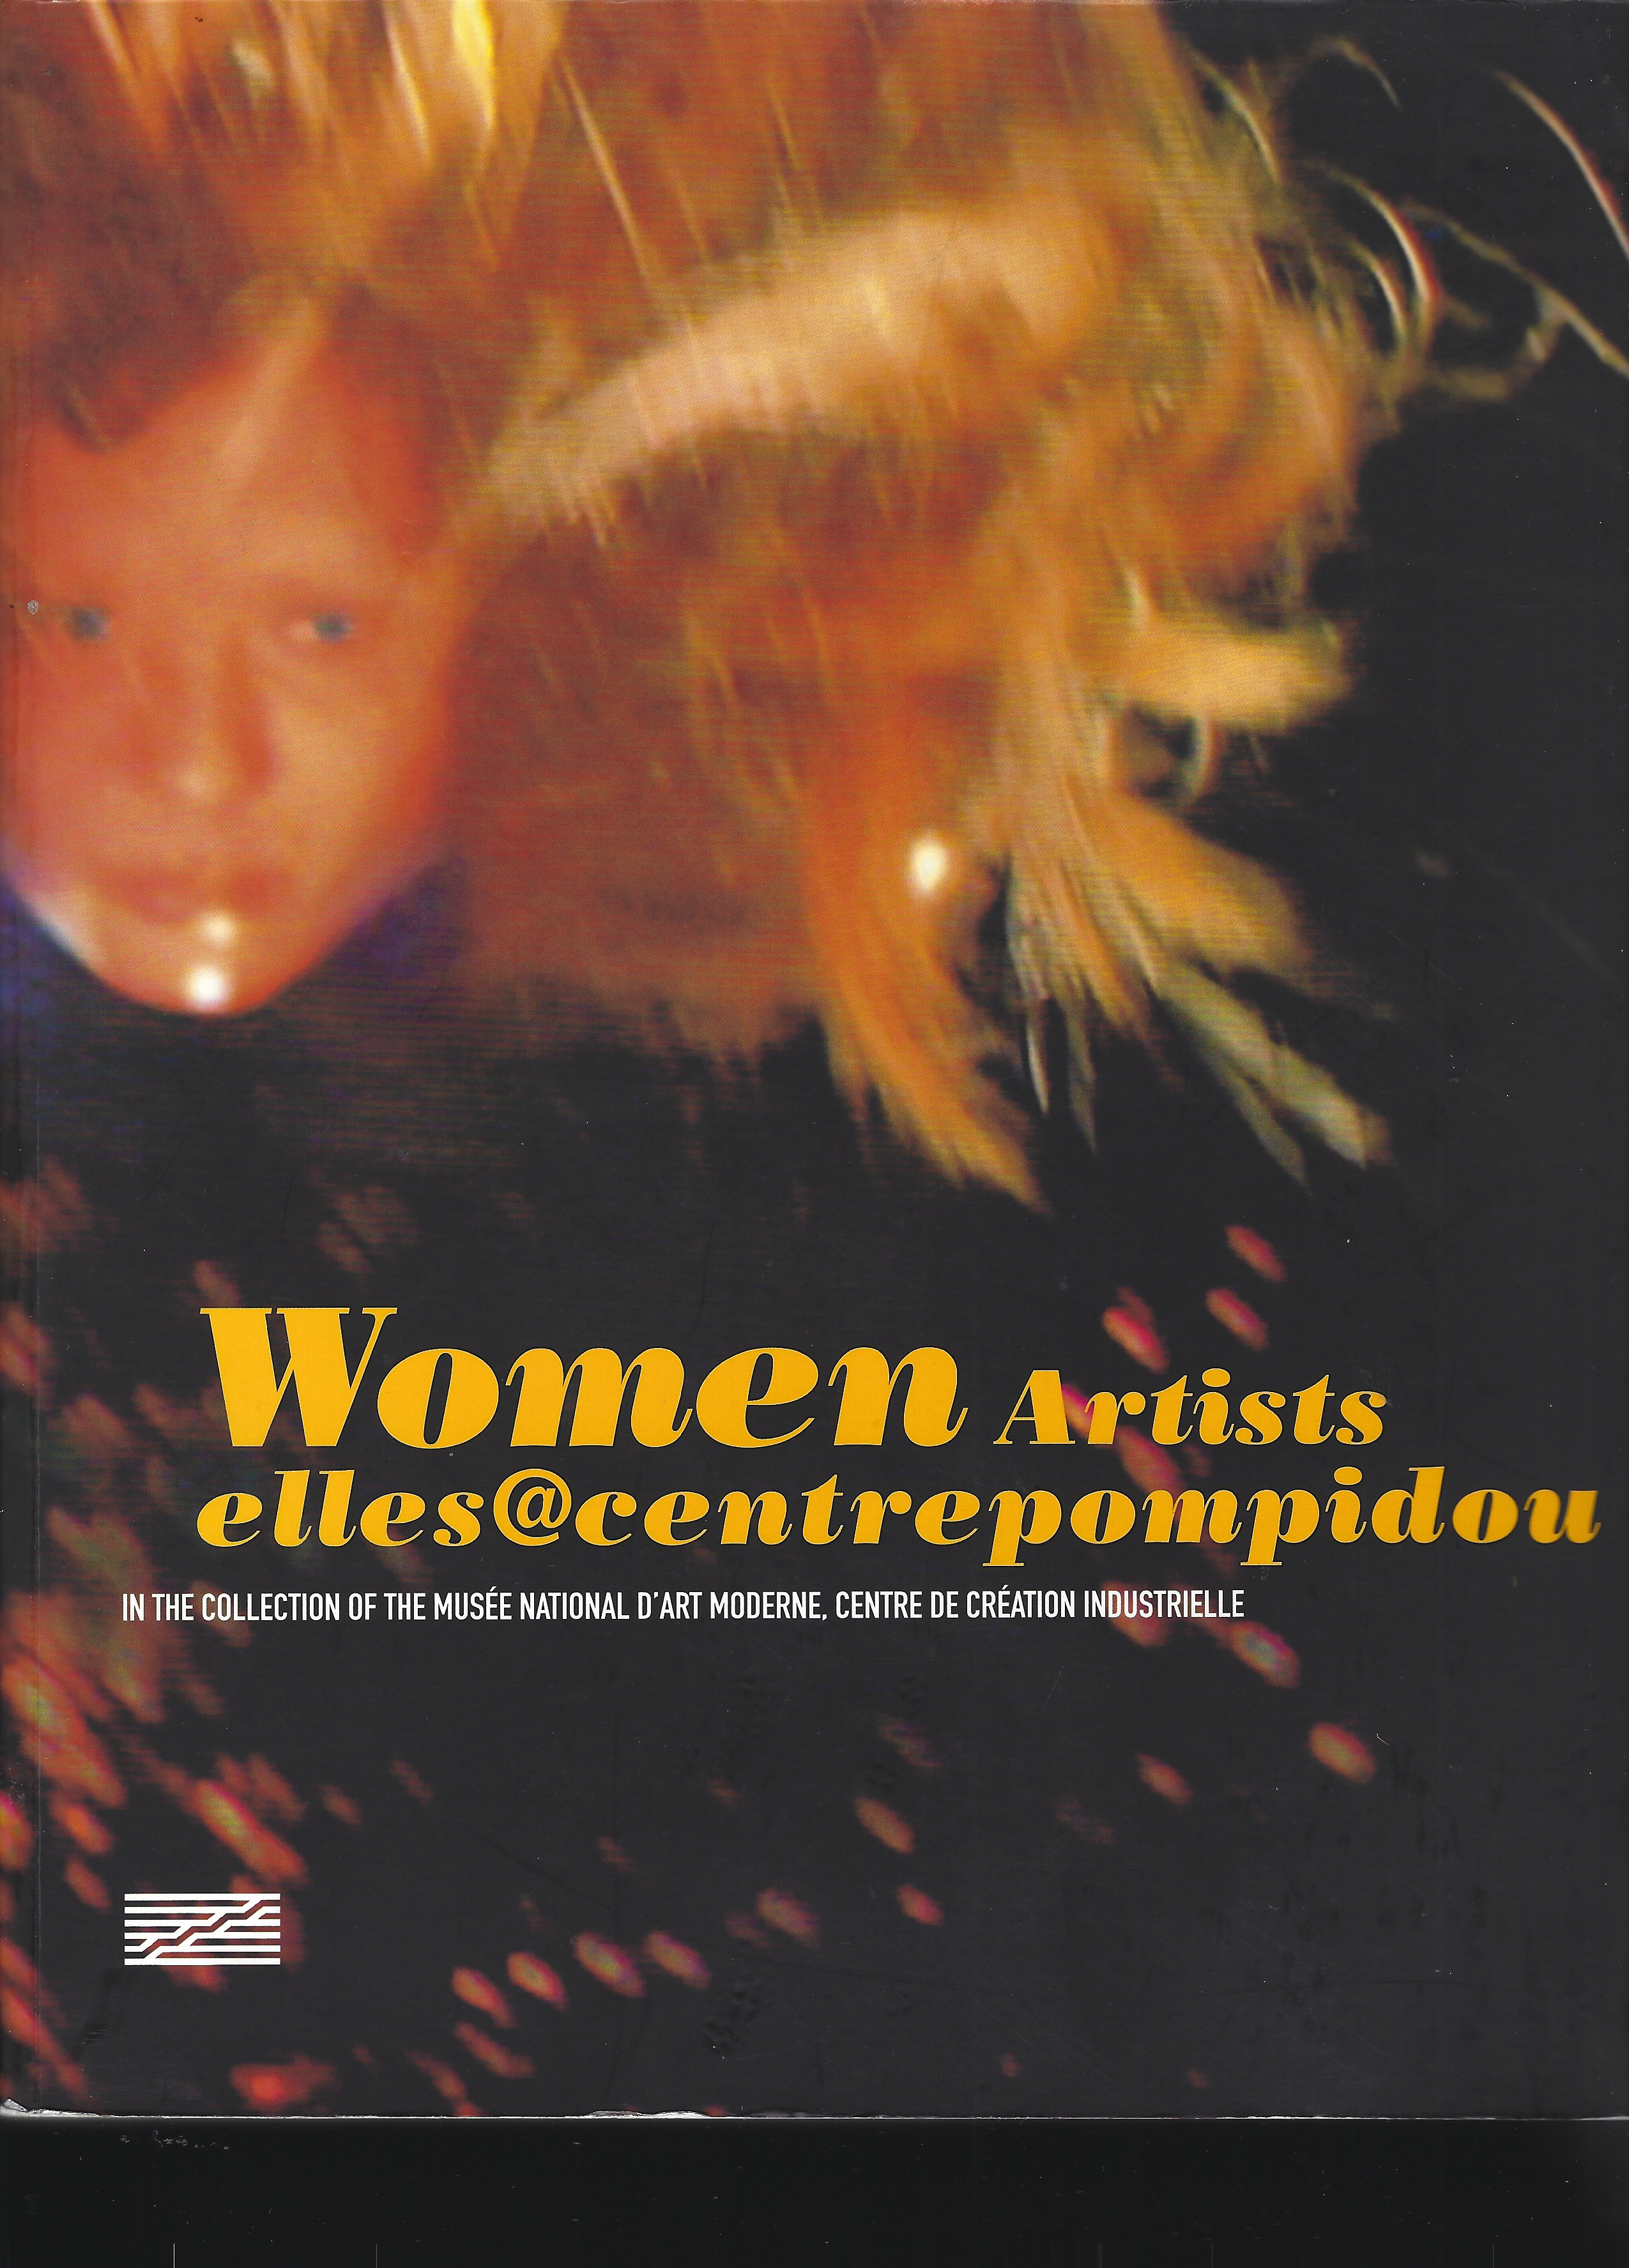 ELLES@CENTREPOMPIDOU: Women Artists in the Collection of The Musee National D'Art Moderne Centre de Creation Industrielle - Morineau Camille